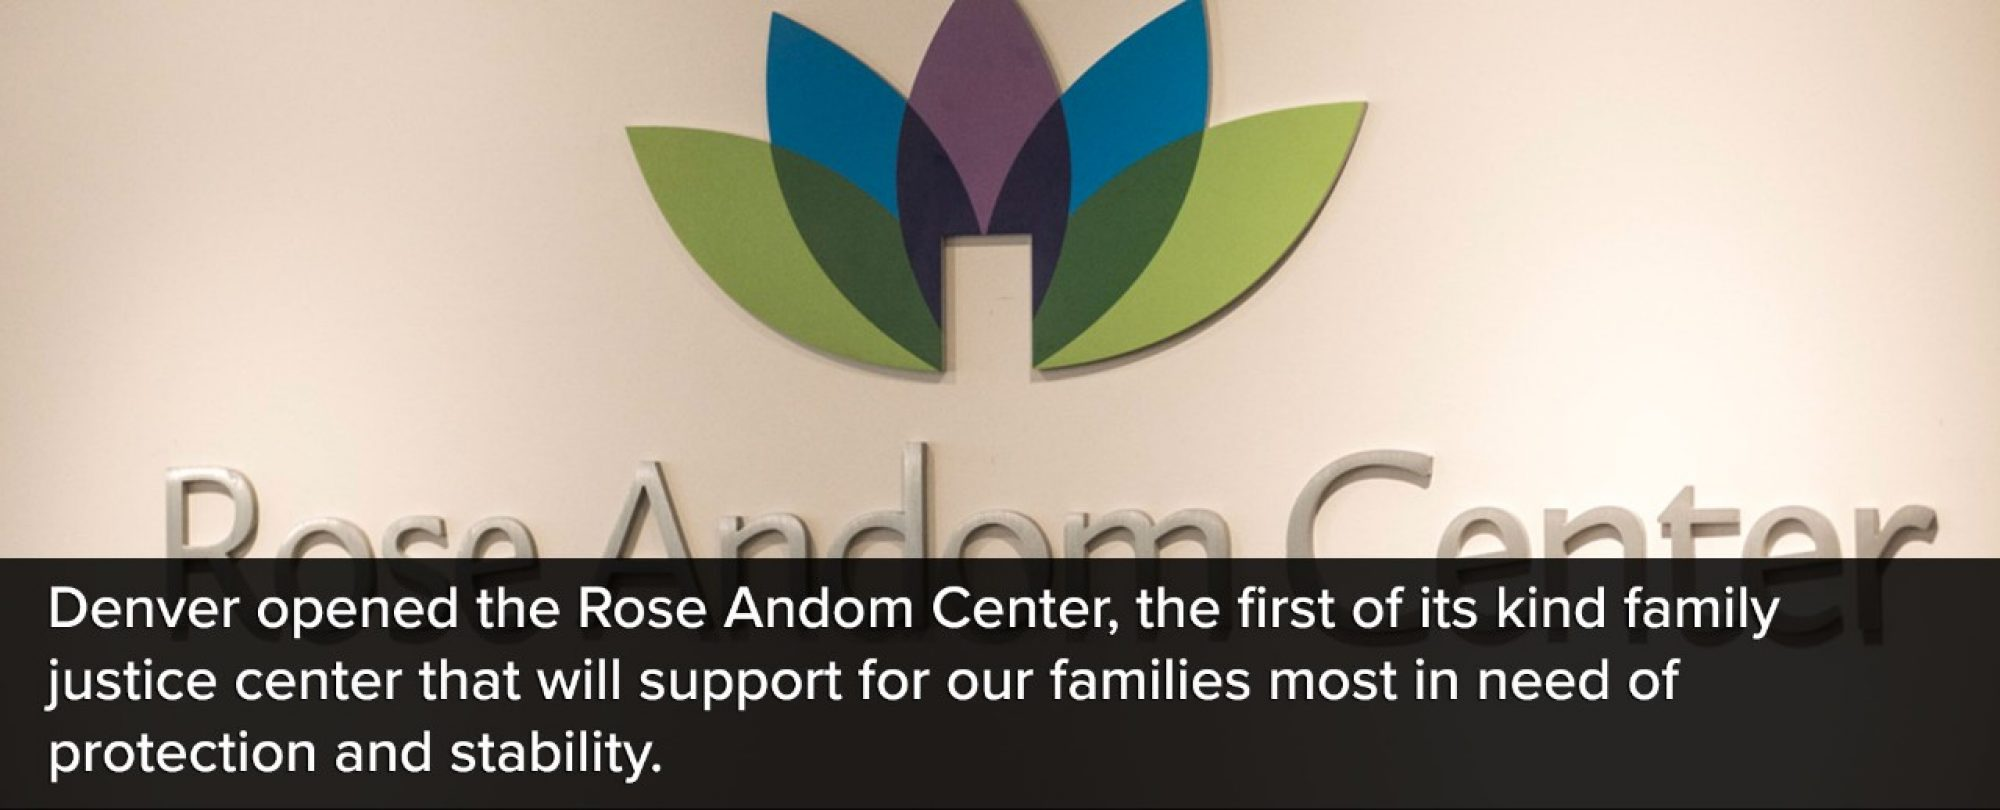 Photo of the Rose Andom Center interior sign. Denver opened the rose Andome Center, the first of its kind family justice center that will provide support for our families most in need of protection and stability.